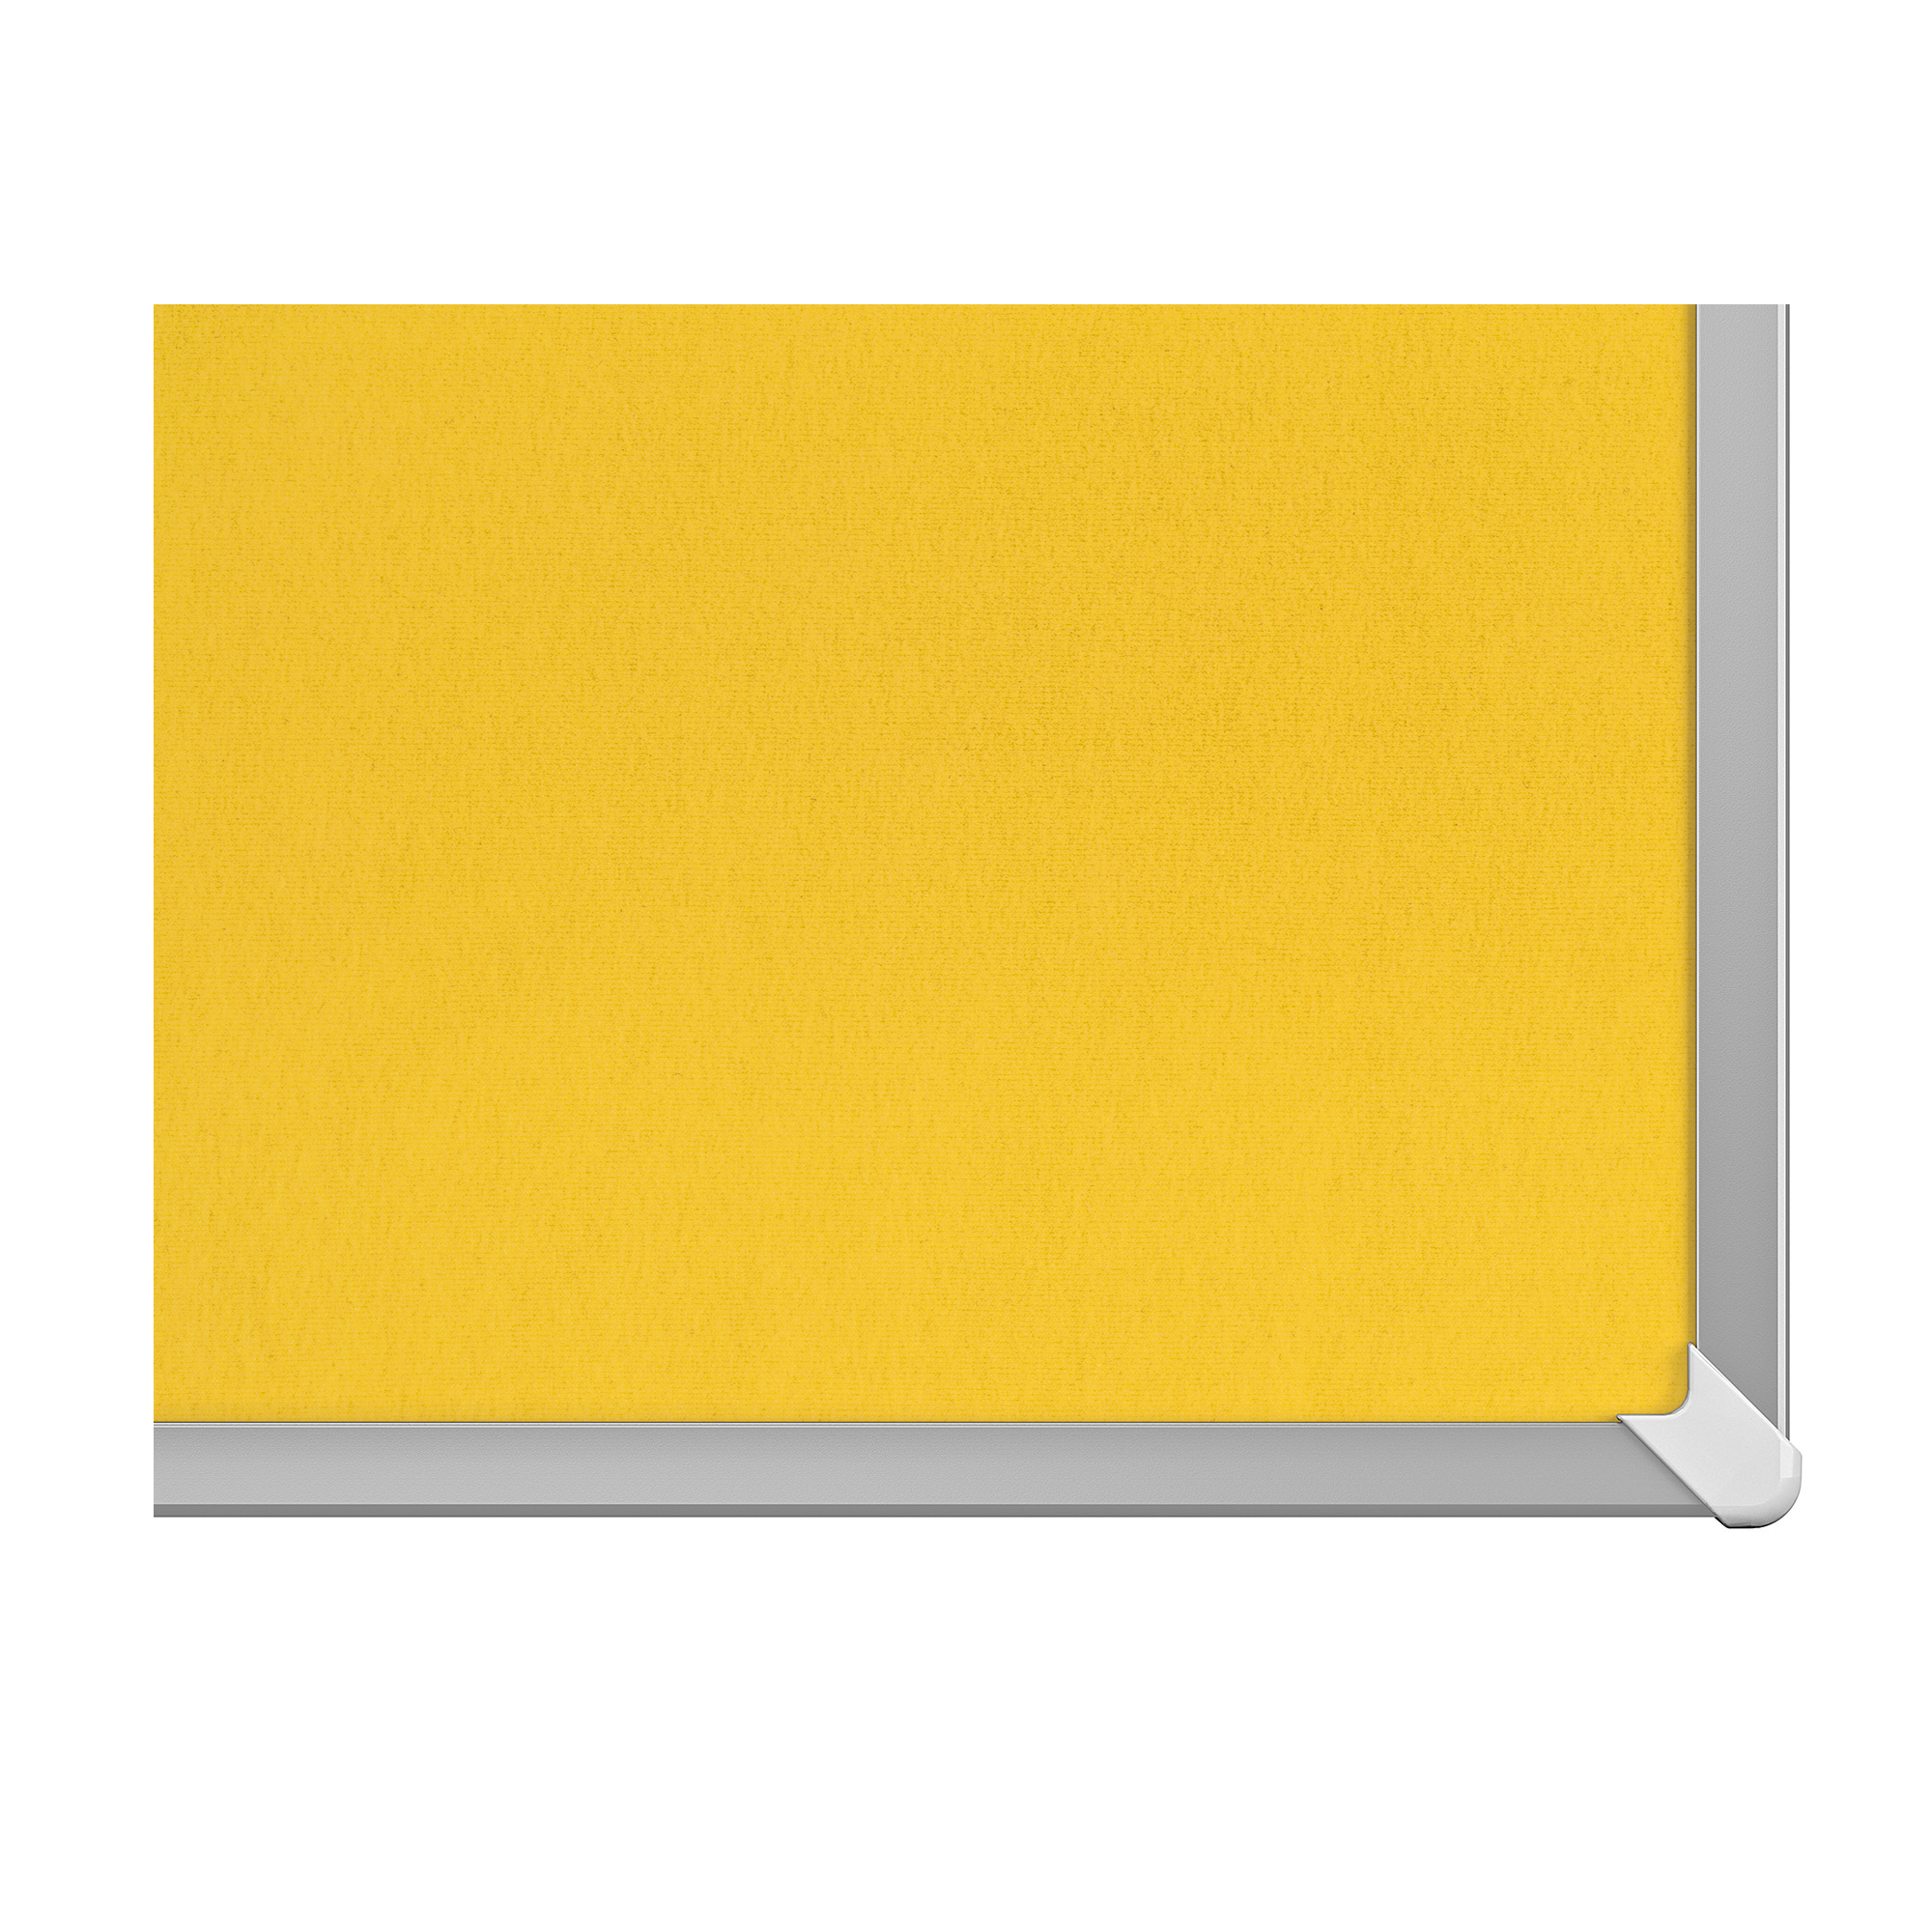 Bulletin boards or accessories Nobo 85 inch Widescreen Felt Board 1880x1060mm Yellow Ref 1905321